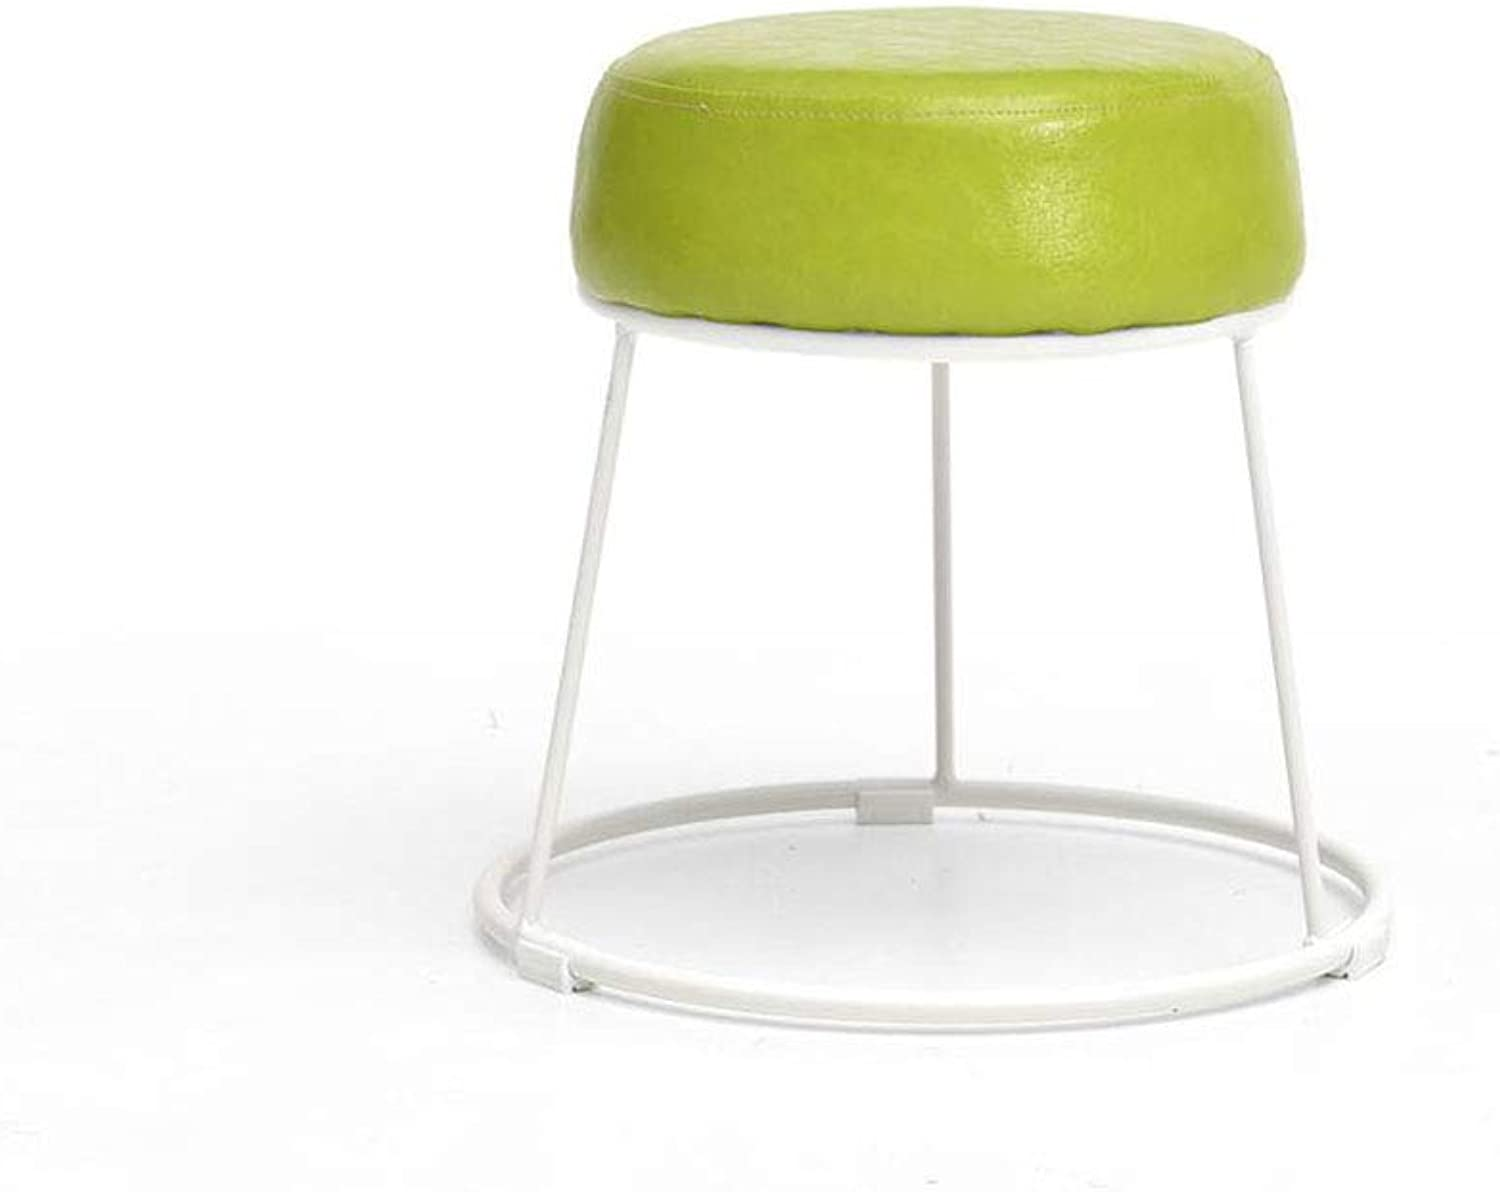 FU Bar Chair Round Iron Restaurant Living Room Creative Dining Stools Solid color PU Makeup Stools,Change shoes Bench,6 colors, Height 36cm (color   Dark Green, Size   38.5  36  28.5cm)